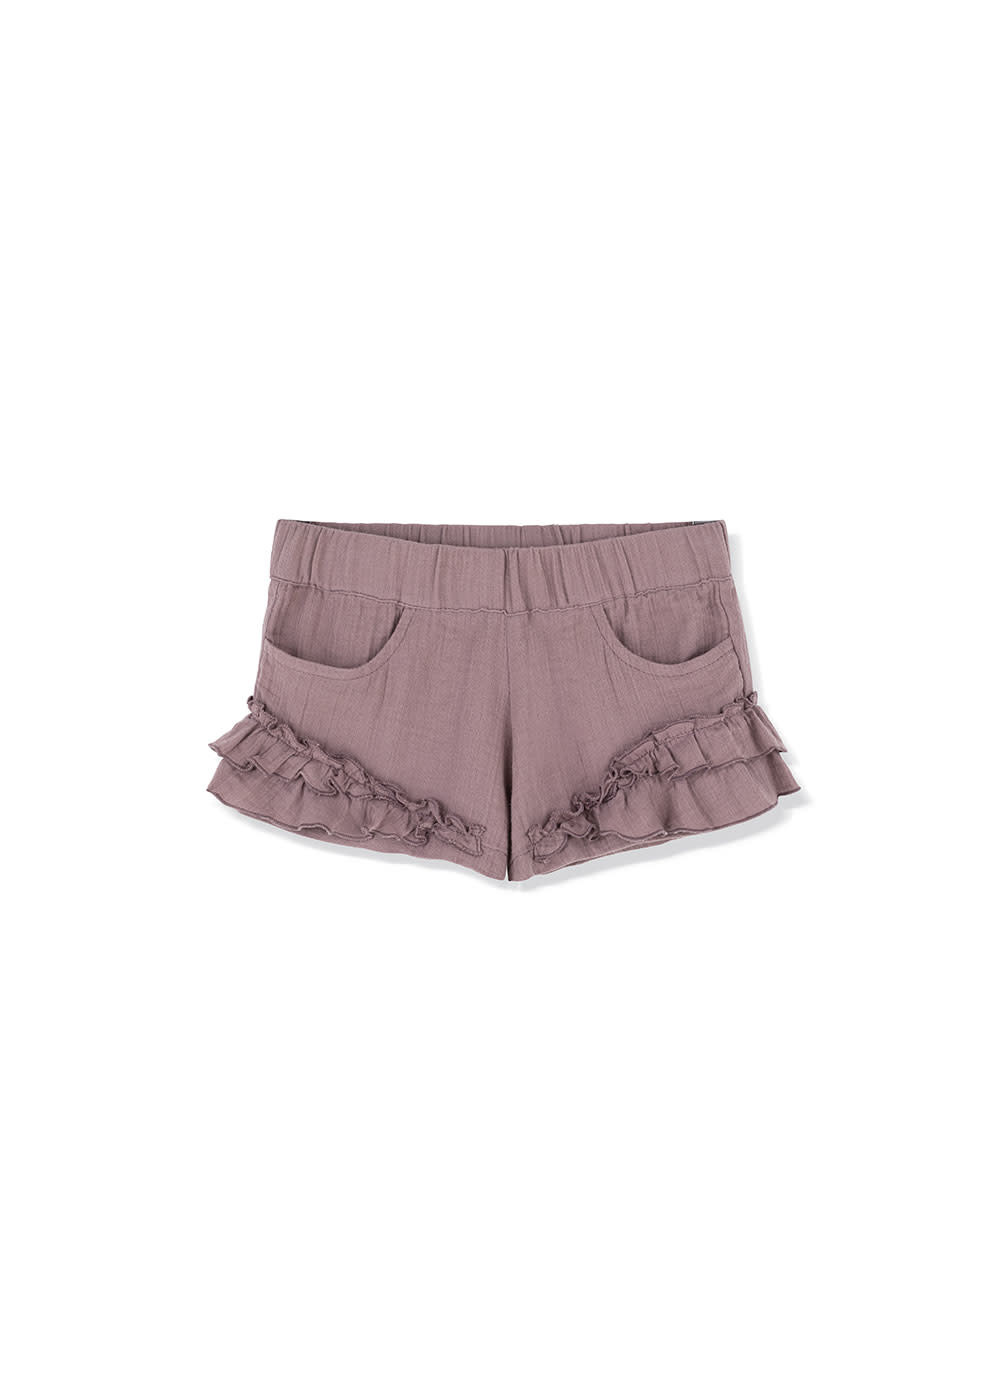 Kids on the moon Kids on the moon - Shorts foggy day ruffle